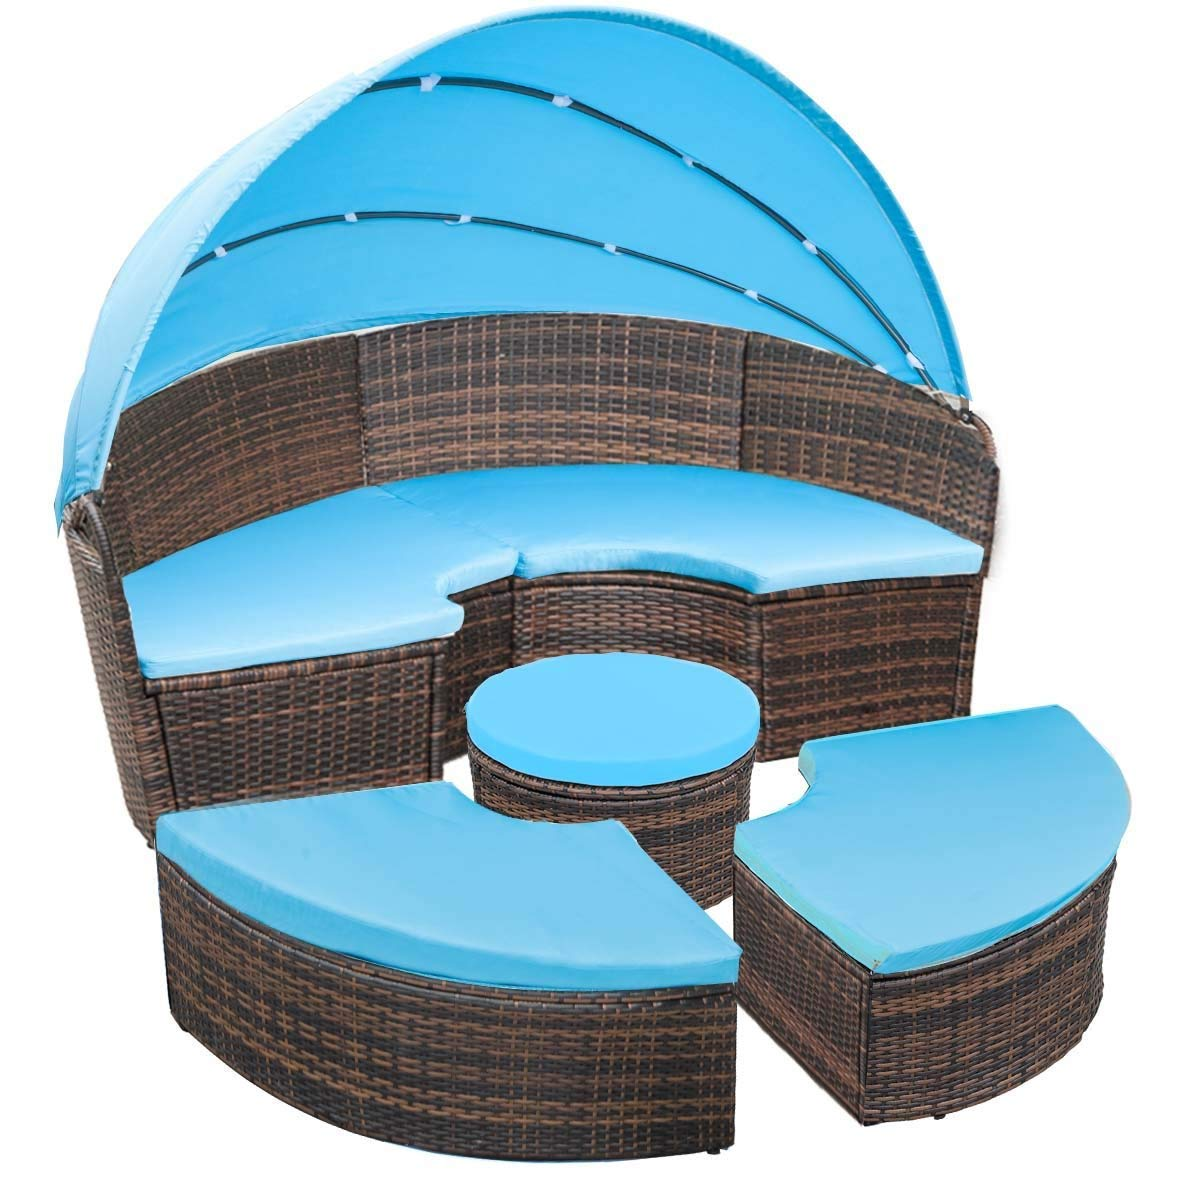 FLIEKS Leisure Zone Outdoor Patio Backyard Poolside Furniture Wicker Rattan Round Daybed with Retractable Canopy (Blue Cushion)